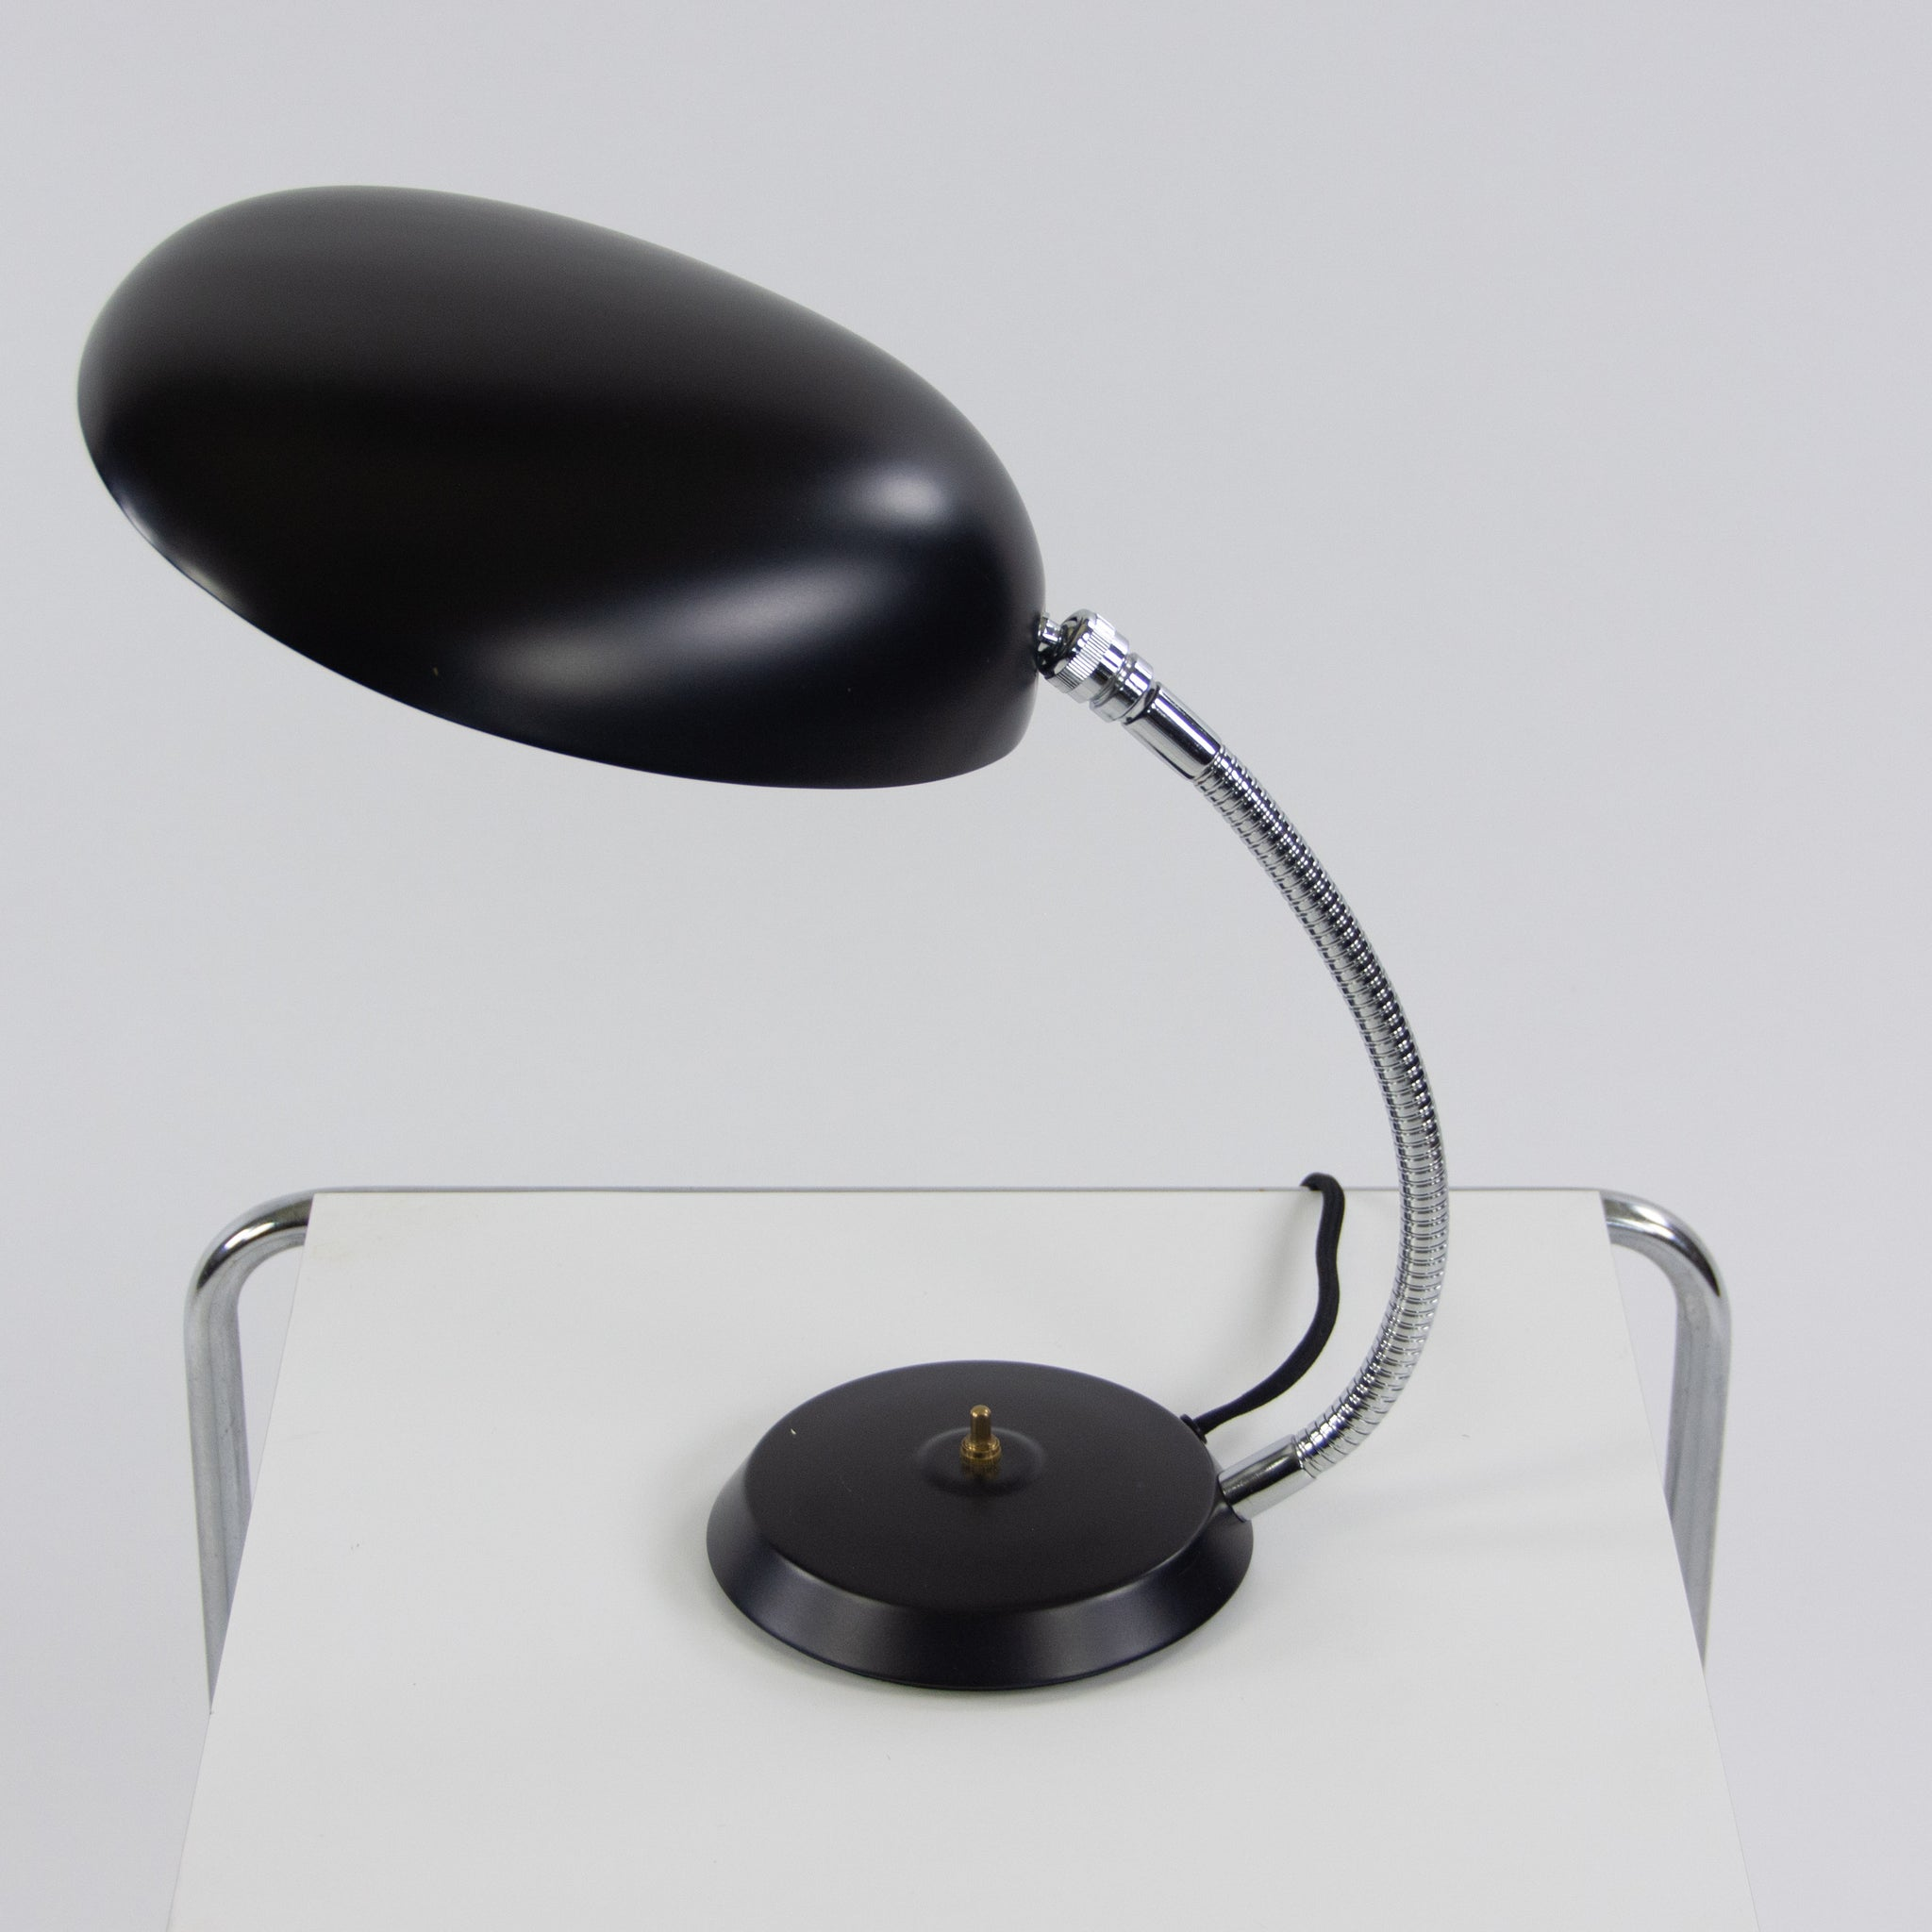 SOLD Gretta Magnusson Grossman Cobra Lamp Black Original Gubi Denmark